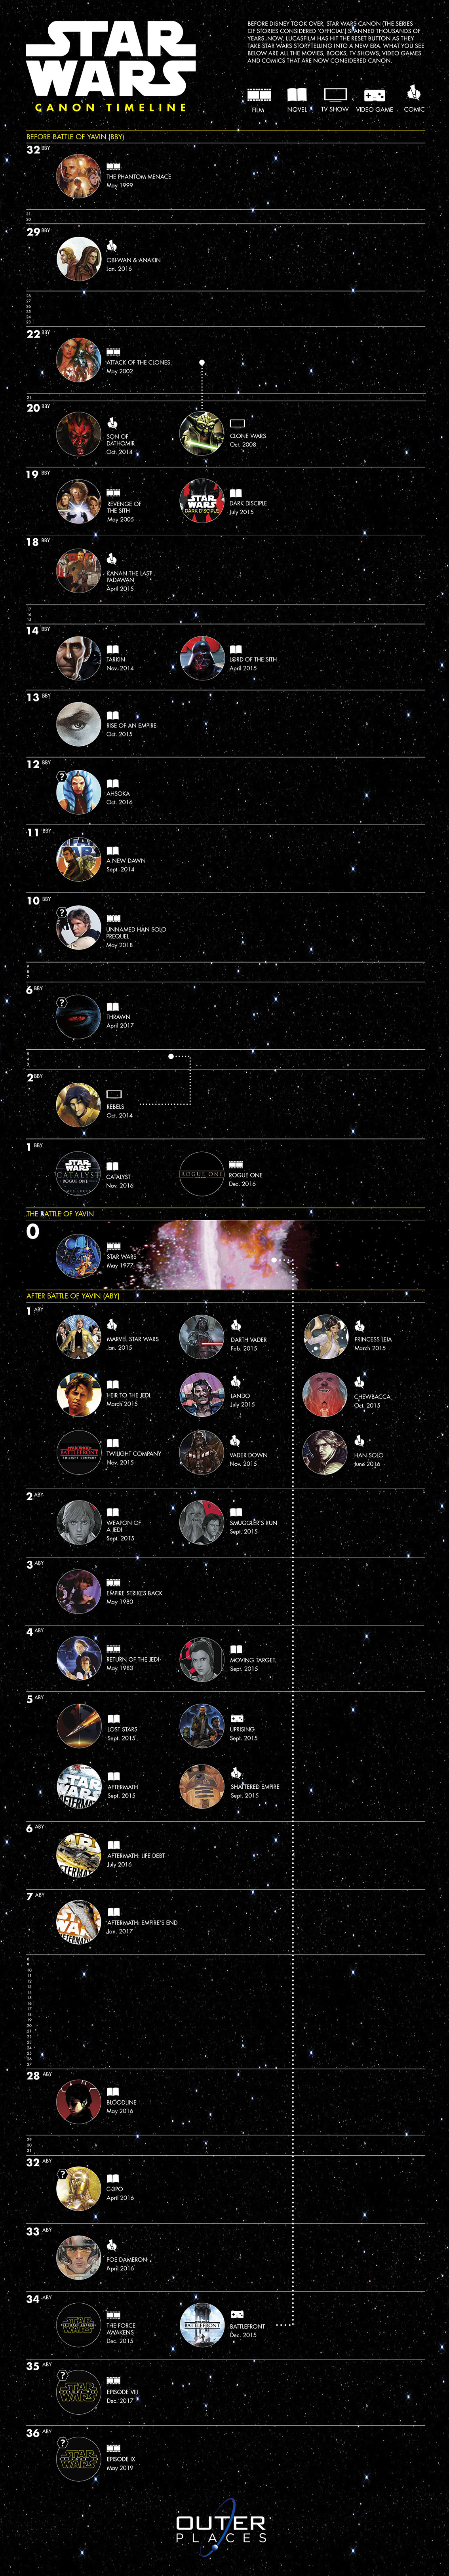 Star Wars Canon Timeline Infographic